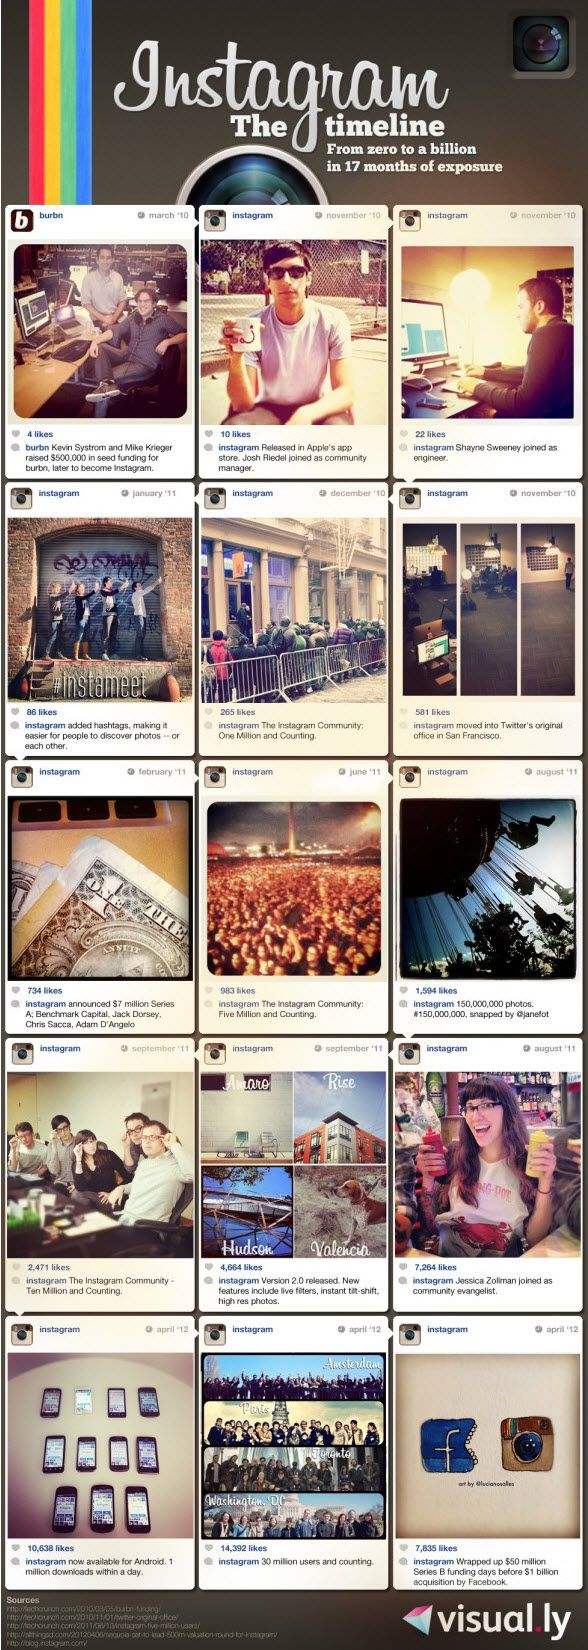 Instagram 2012 Infographic Facts Figures and statistics